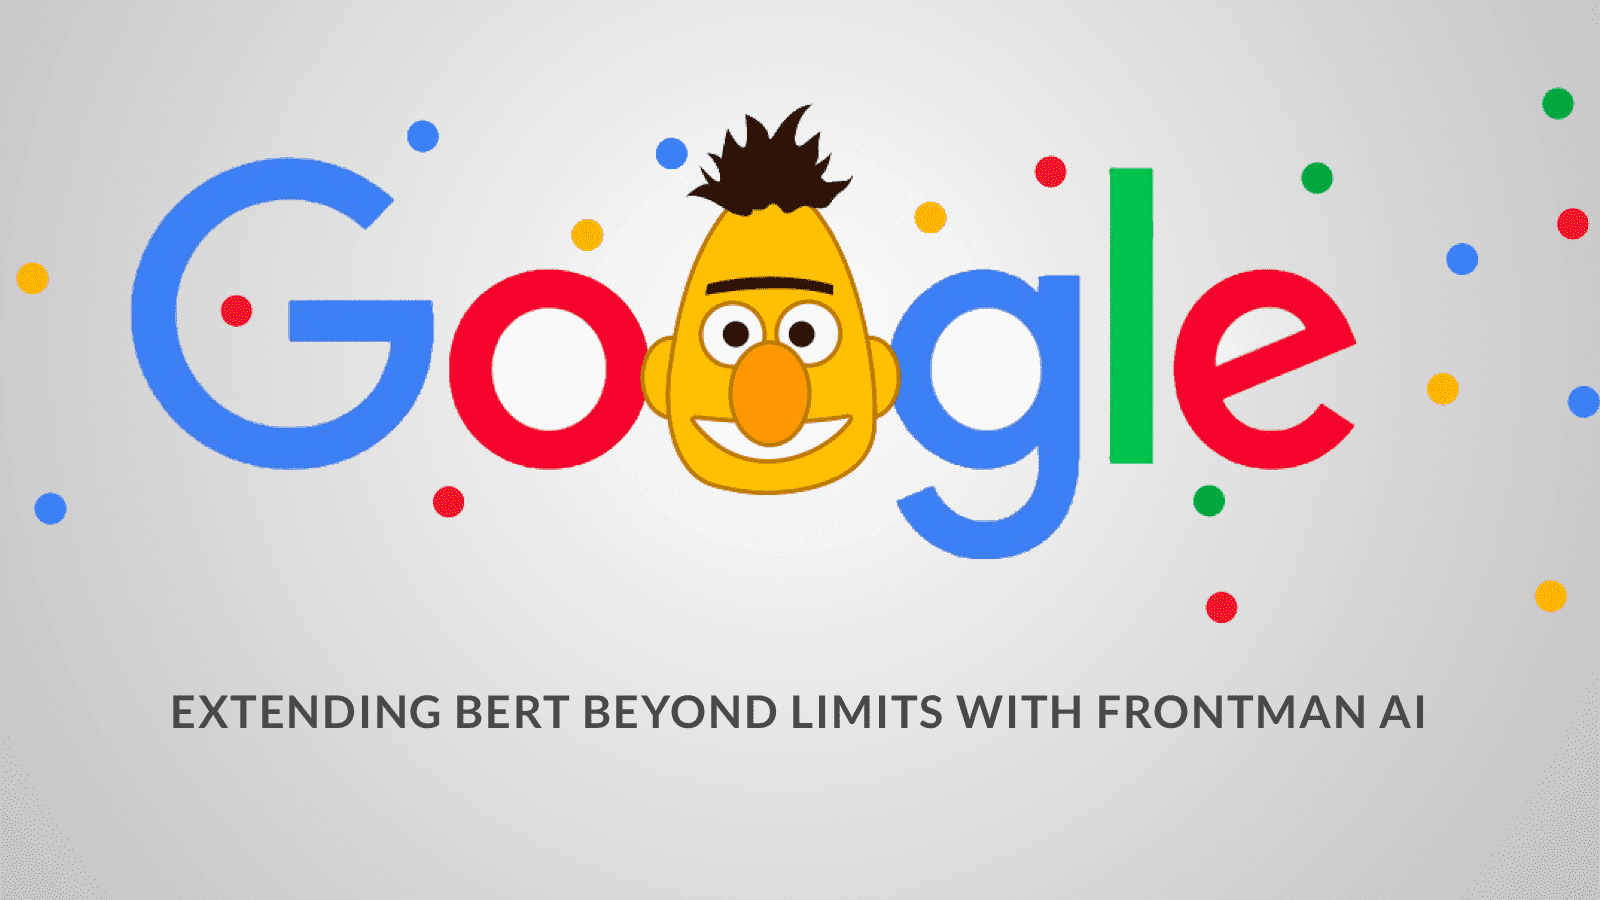 Extending Google-BERT Beyond Limits With Frontman AI